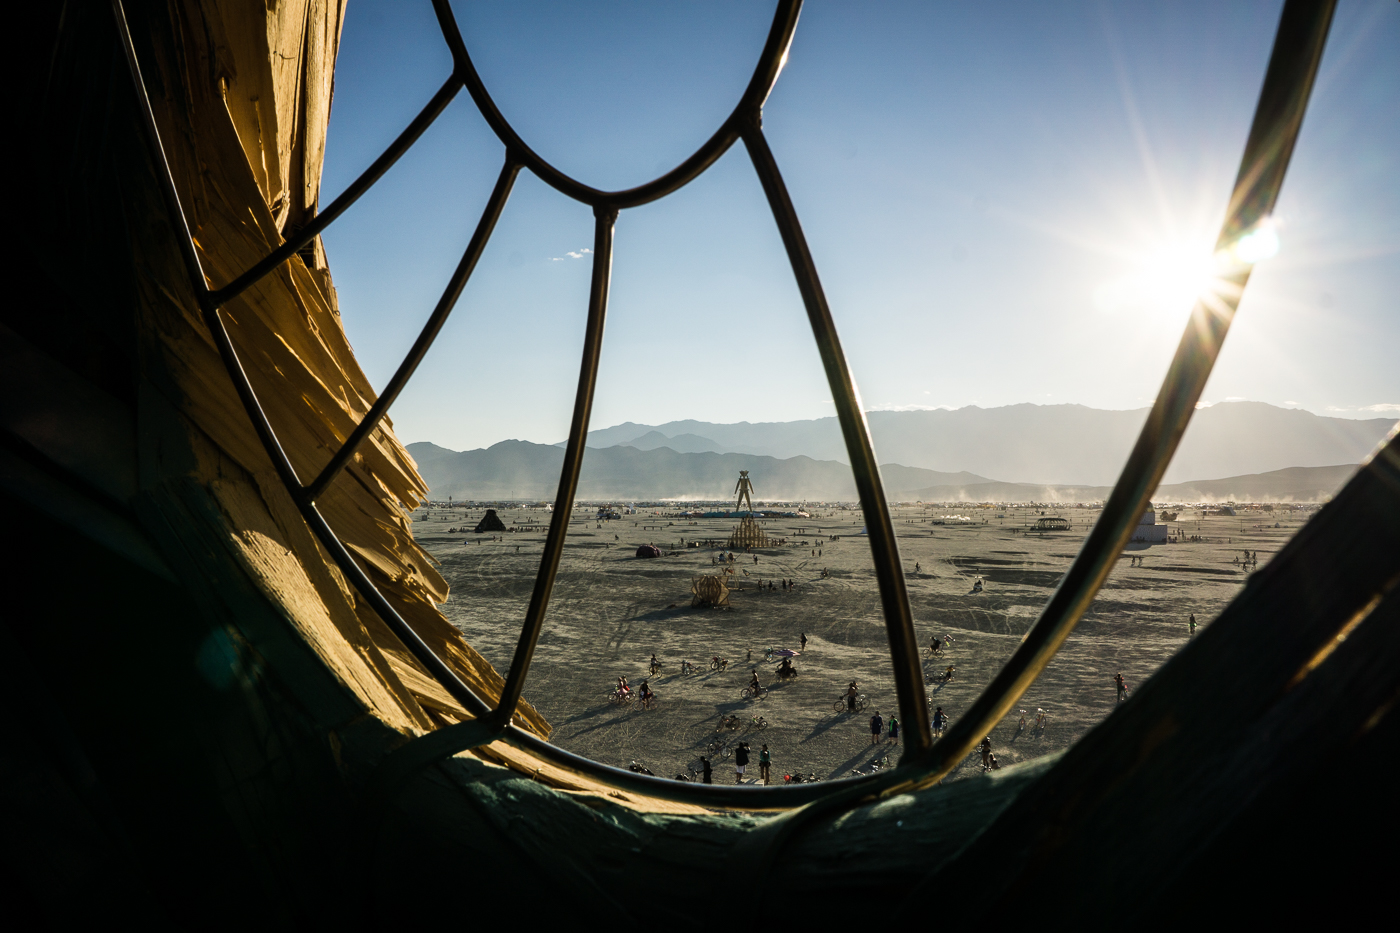 View of the Man from Embrace, Burning Man 2014: In Dust We Trust - Photos of a Dusty Playa